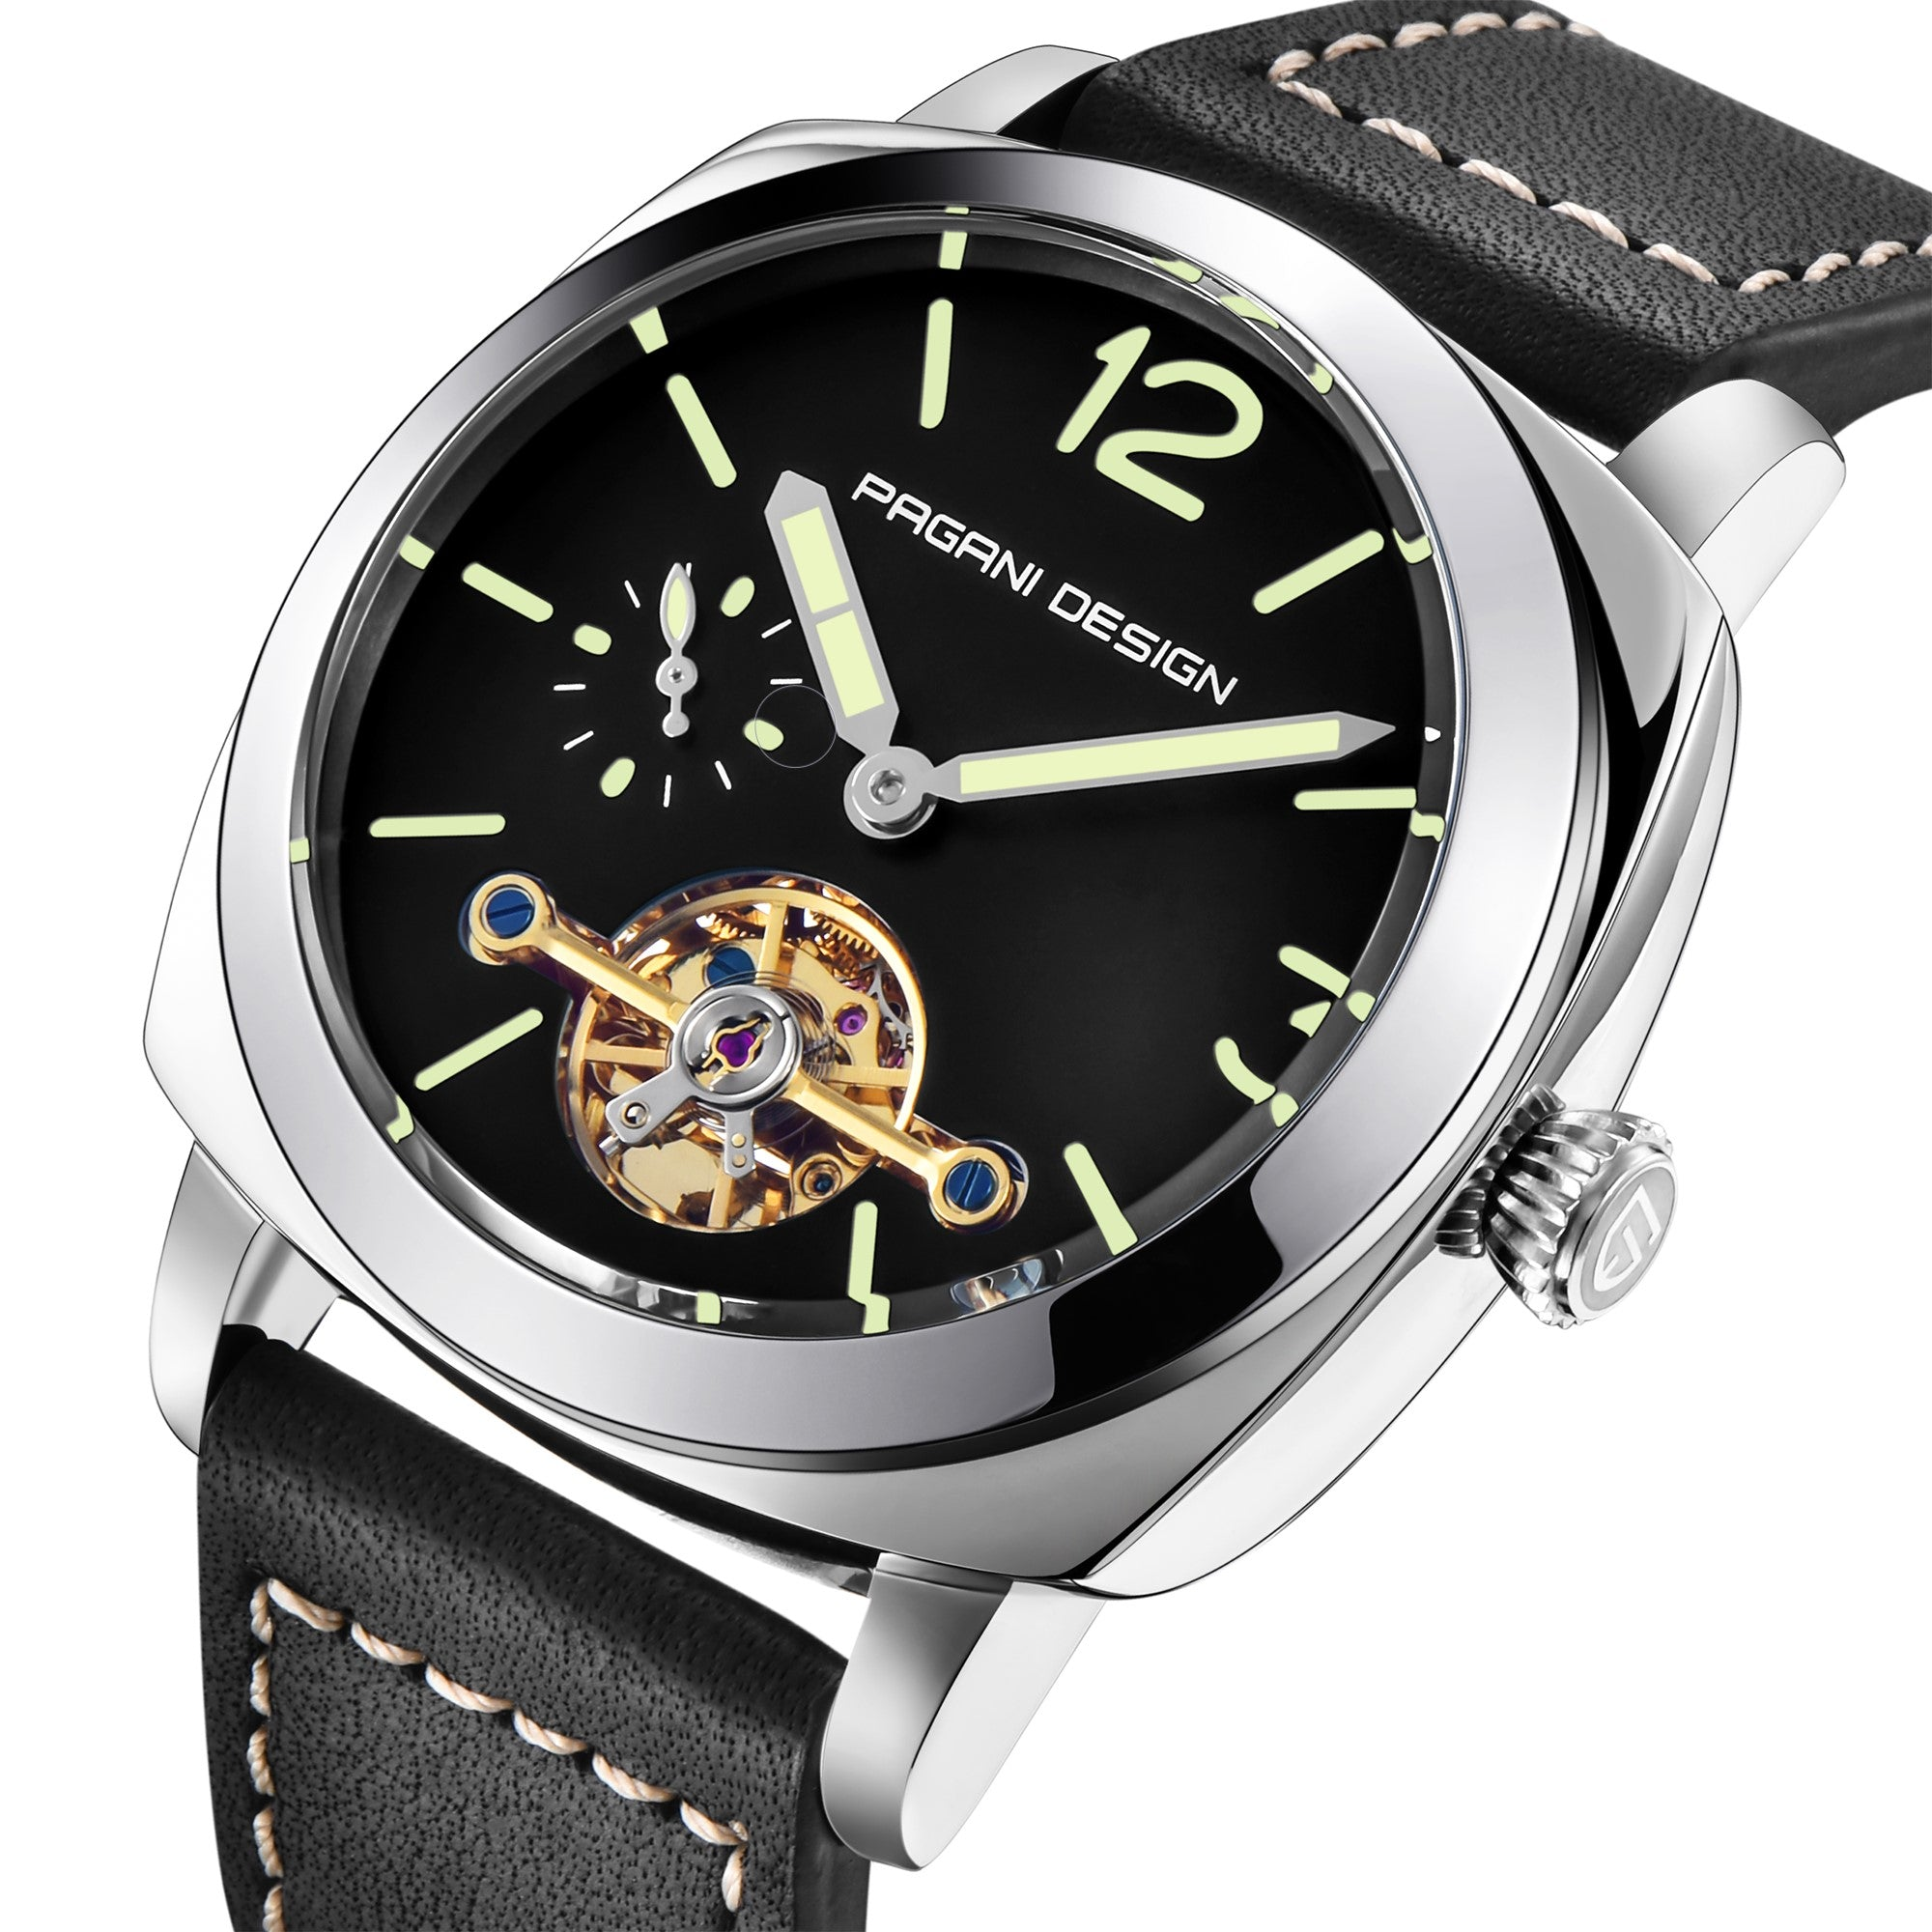 swiss retracts ixlib watches strong news icons h moser breaking the watch rails articles